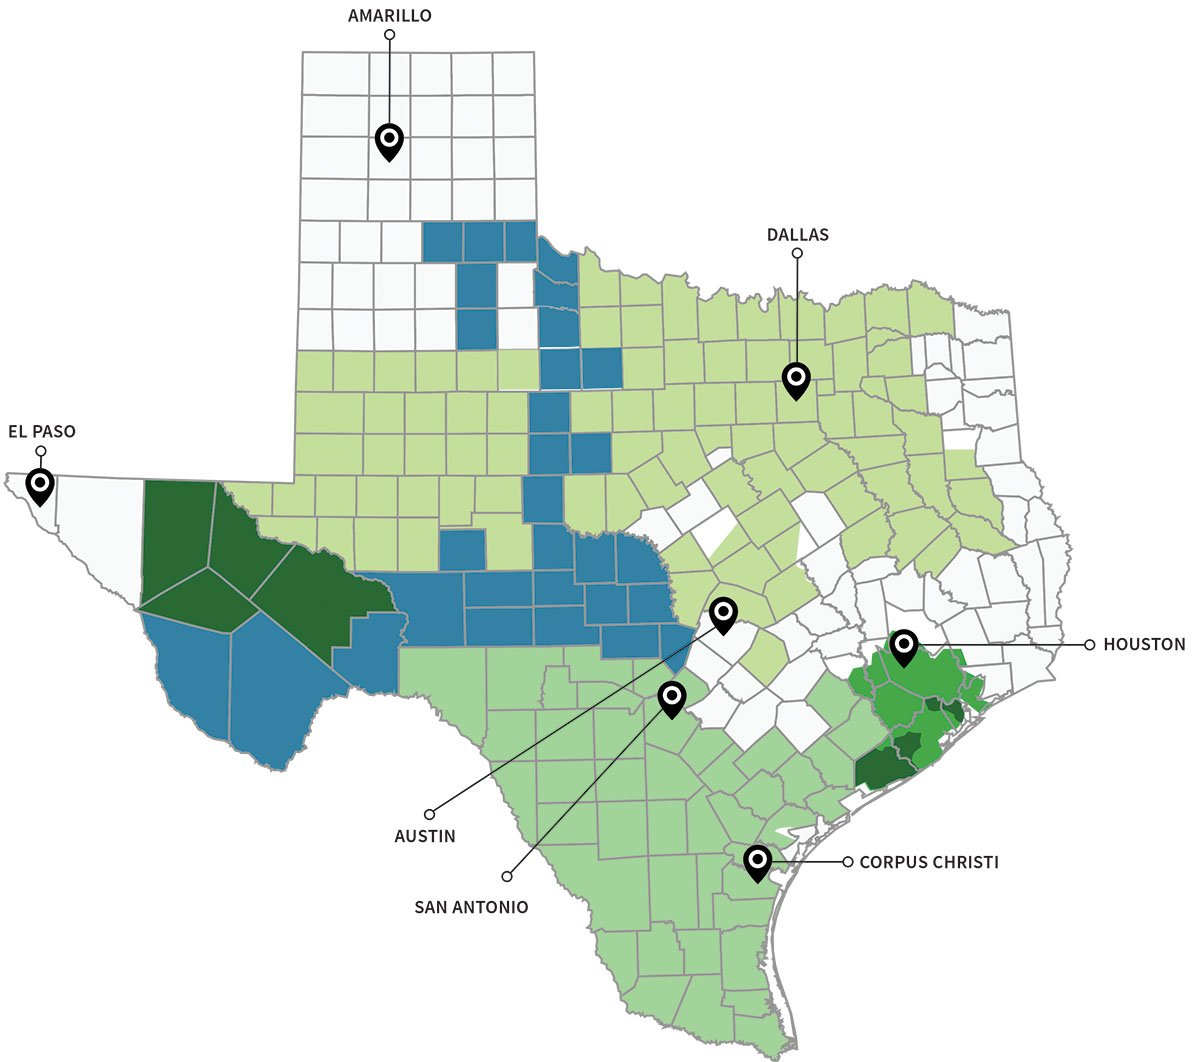 Map Of Texas With All Cities.Texas Energy Deregulation Map Electricity Deregulated Cities In Texas